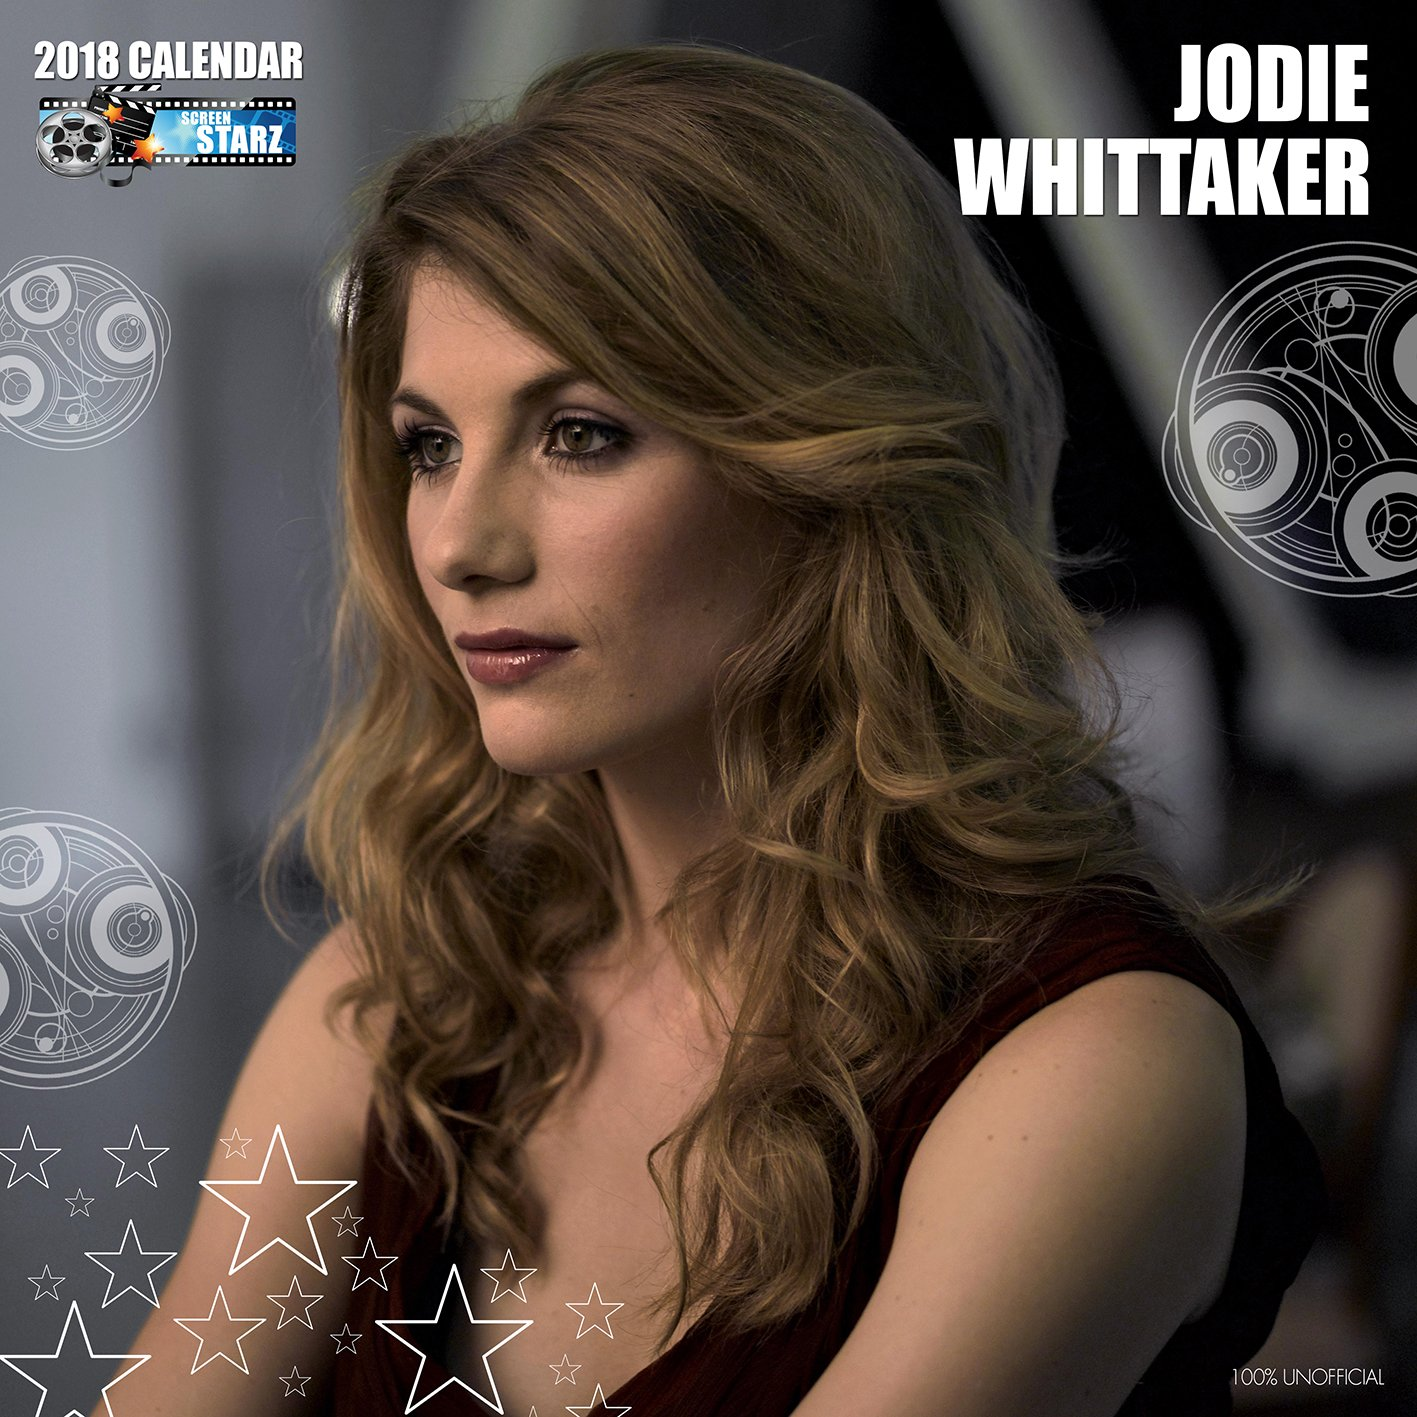 jodie whittaker instagramjodie whittaker instagram, jodie whittaker accent, jodie whittaker height, jodie whittaker twitter, jodie whittaker gif hunt, jodie whittaker and chris chibnall, jodie whittaker wikipedia, jodie whittaker daughter name, jodie whittaker doctor, jodie whittaker imdb, jodie whittaker interview 2019, jodie whittaker style, jodie whittaker father, jodie whittaker tardis, jodie whittaker photo gallery, jodie whittaker instagram official, jodie whittaker social media, jodie whittaker eye color, jodie whittaker america, jodie whittaker 13th doctor